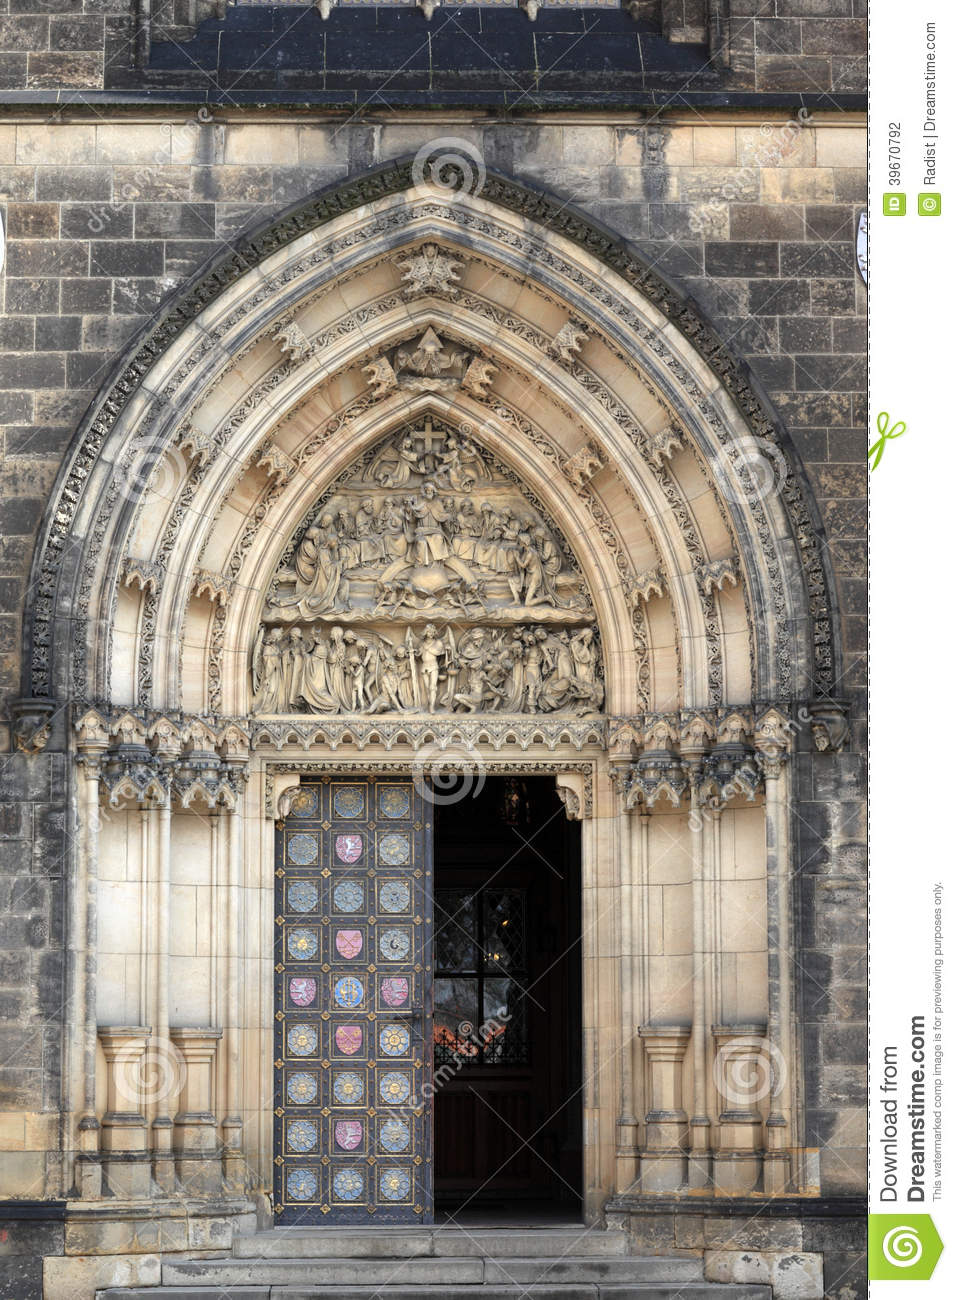 Royalty-Free Stock Photo & Main door of the cathedral stock photo. Image of gate - 39670792 pezcame.com